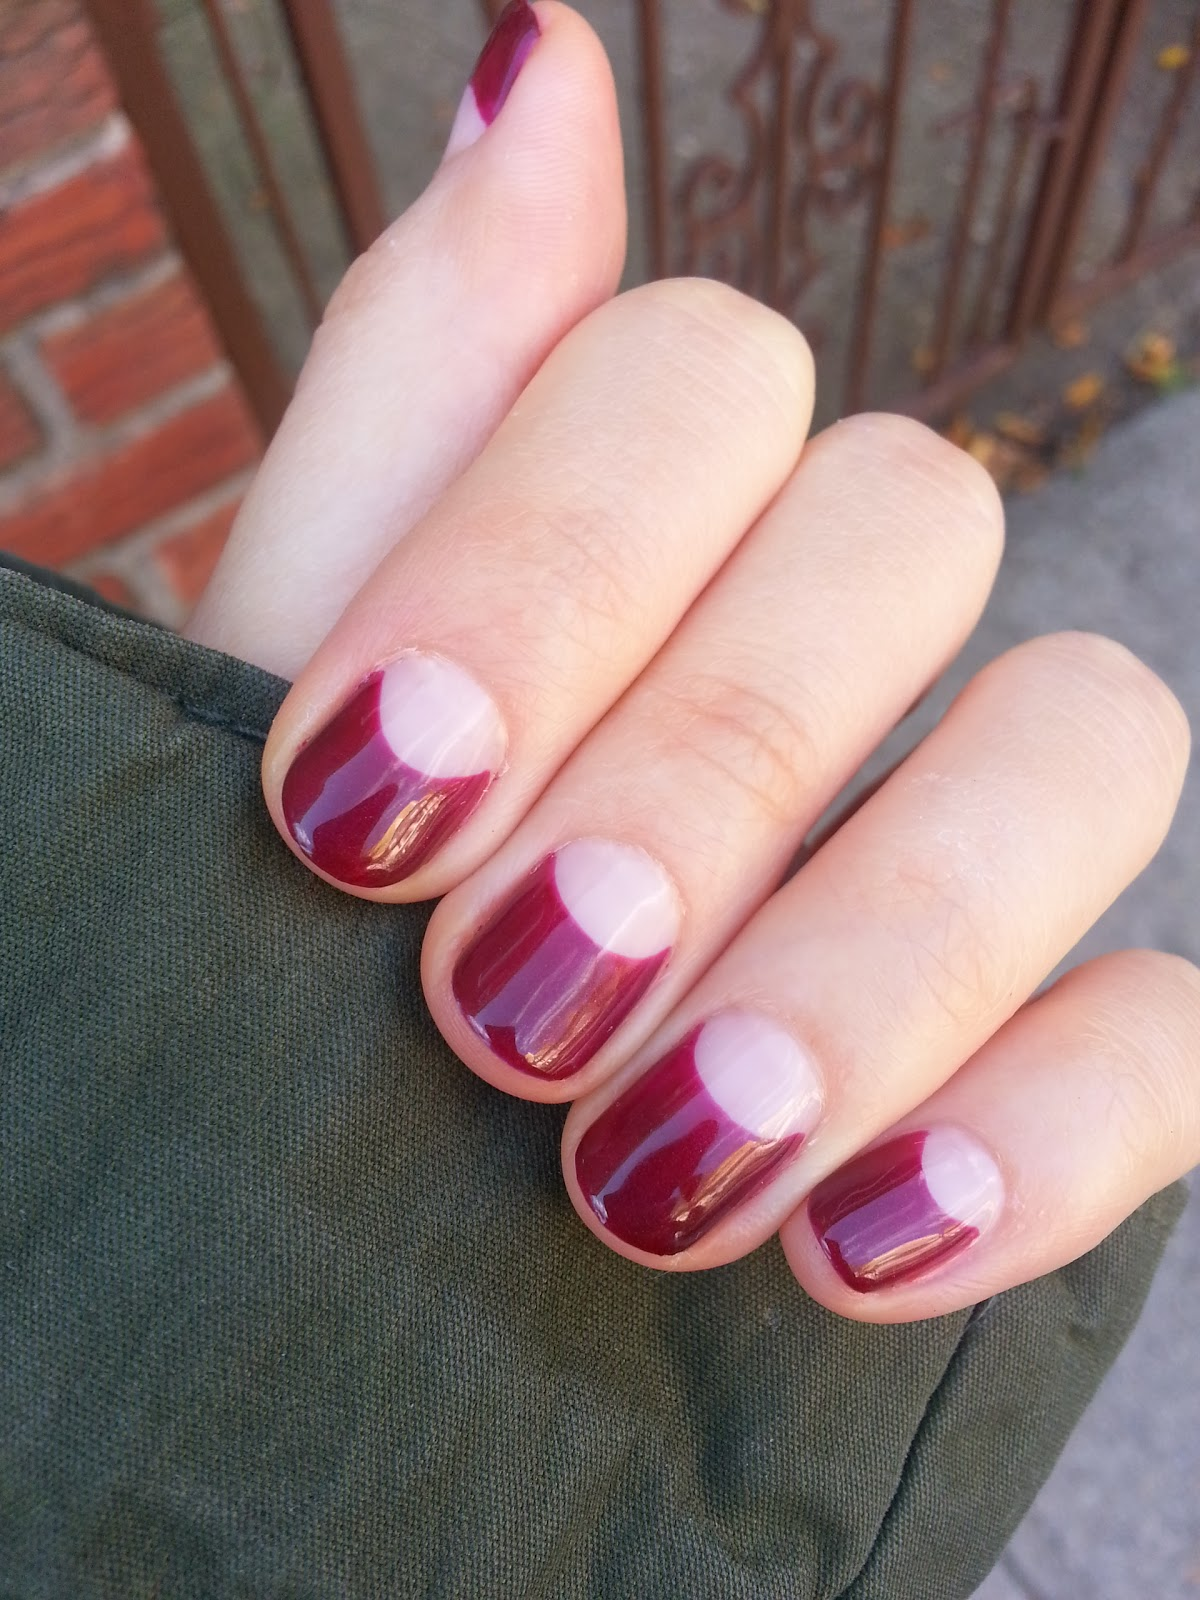 Gel nail art NYC 033 - Half moon wine color deep french | (example ...